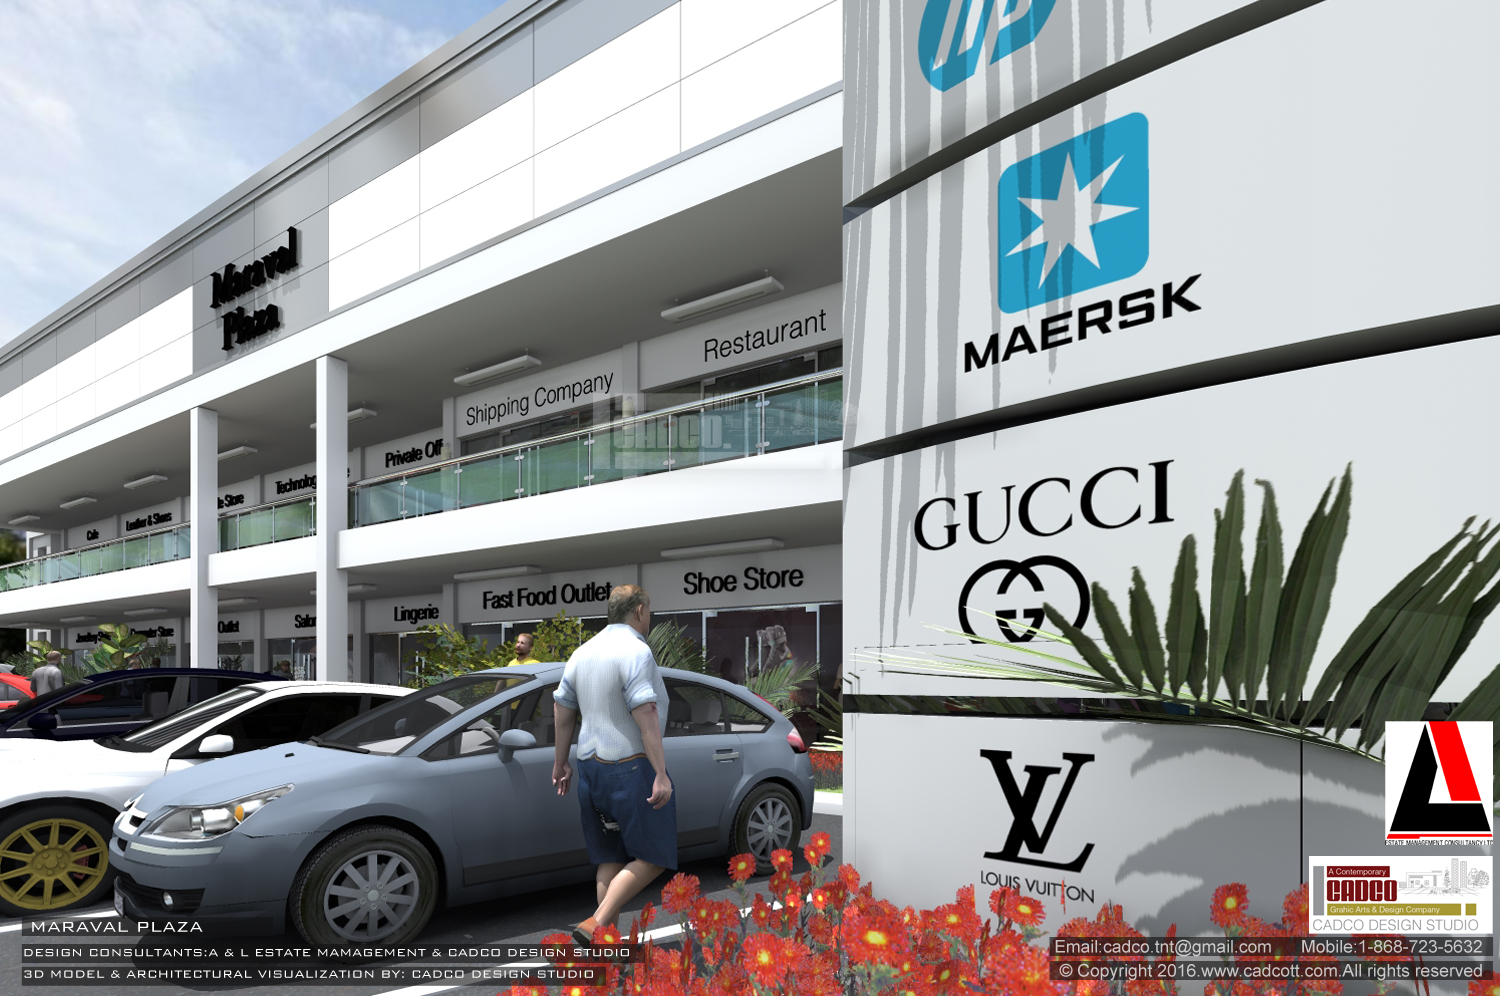 Maraval Plaza Shopping